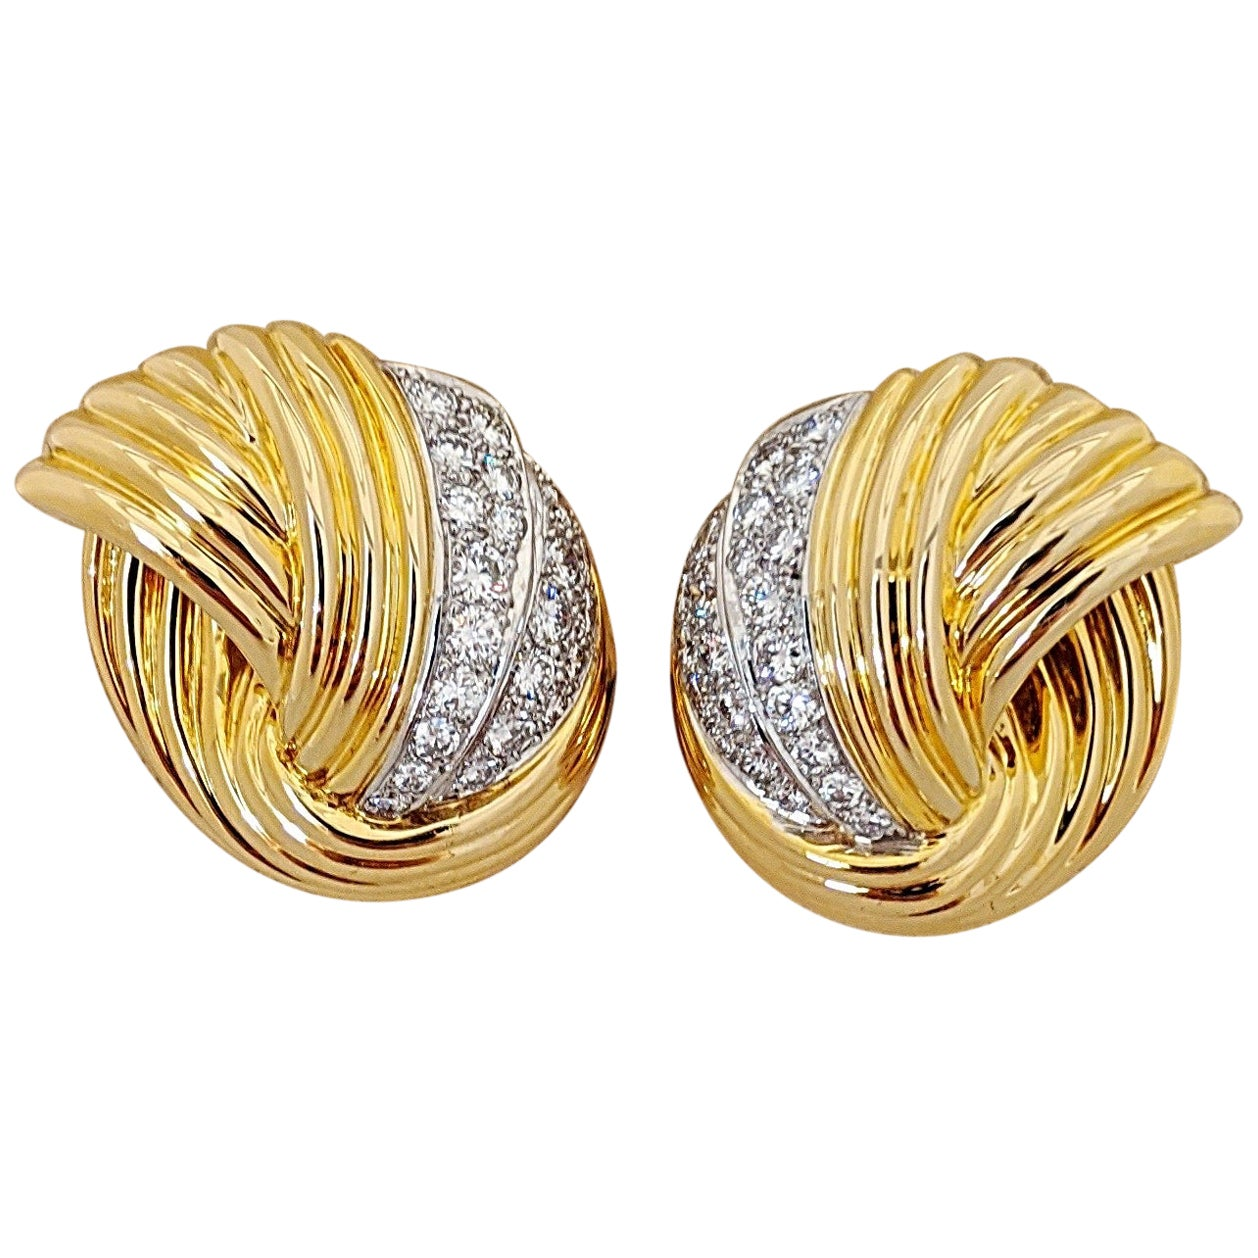 Cellini Jewelers 18 KT Y/W Gold, 2.24 CT Vintage Collectible Dia.Swirl Earrings